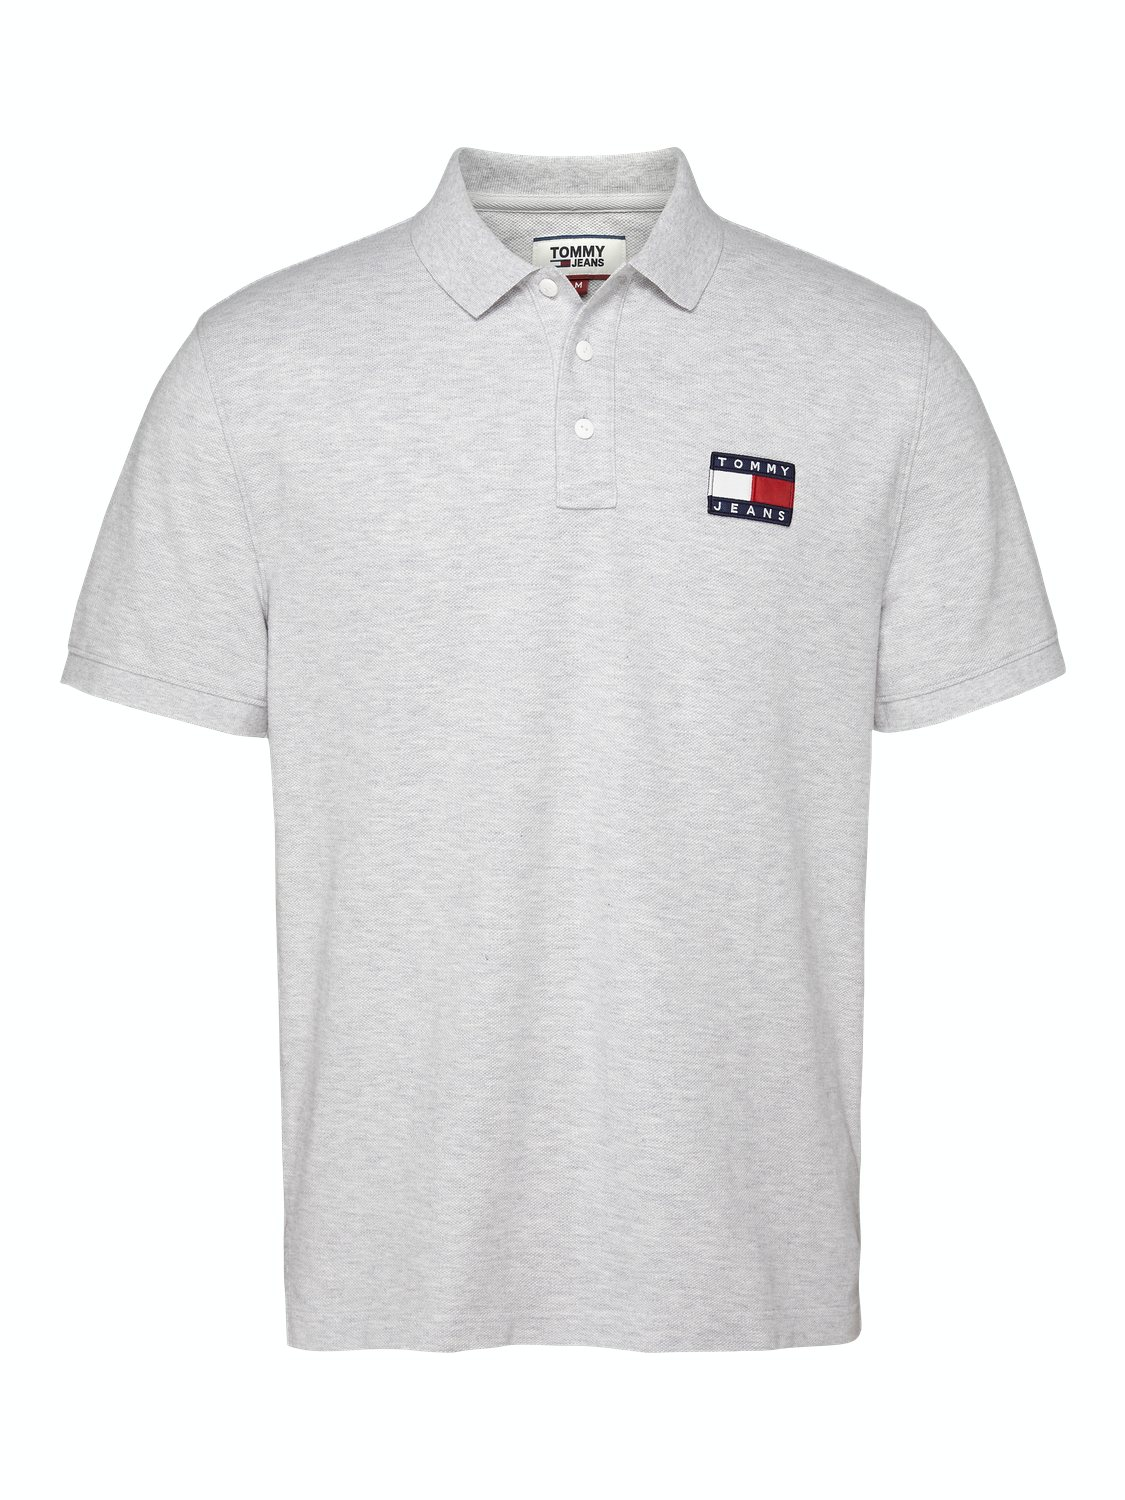 TJM - Badge Polo LT Grey | Gate36 Hobro